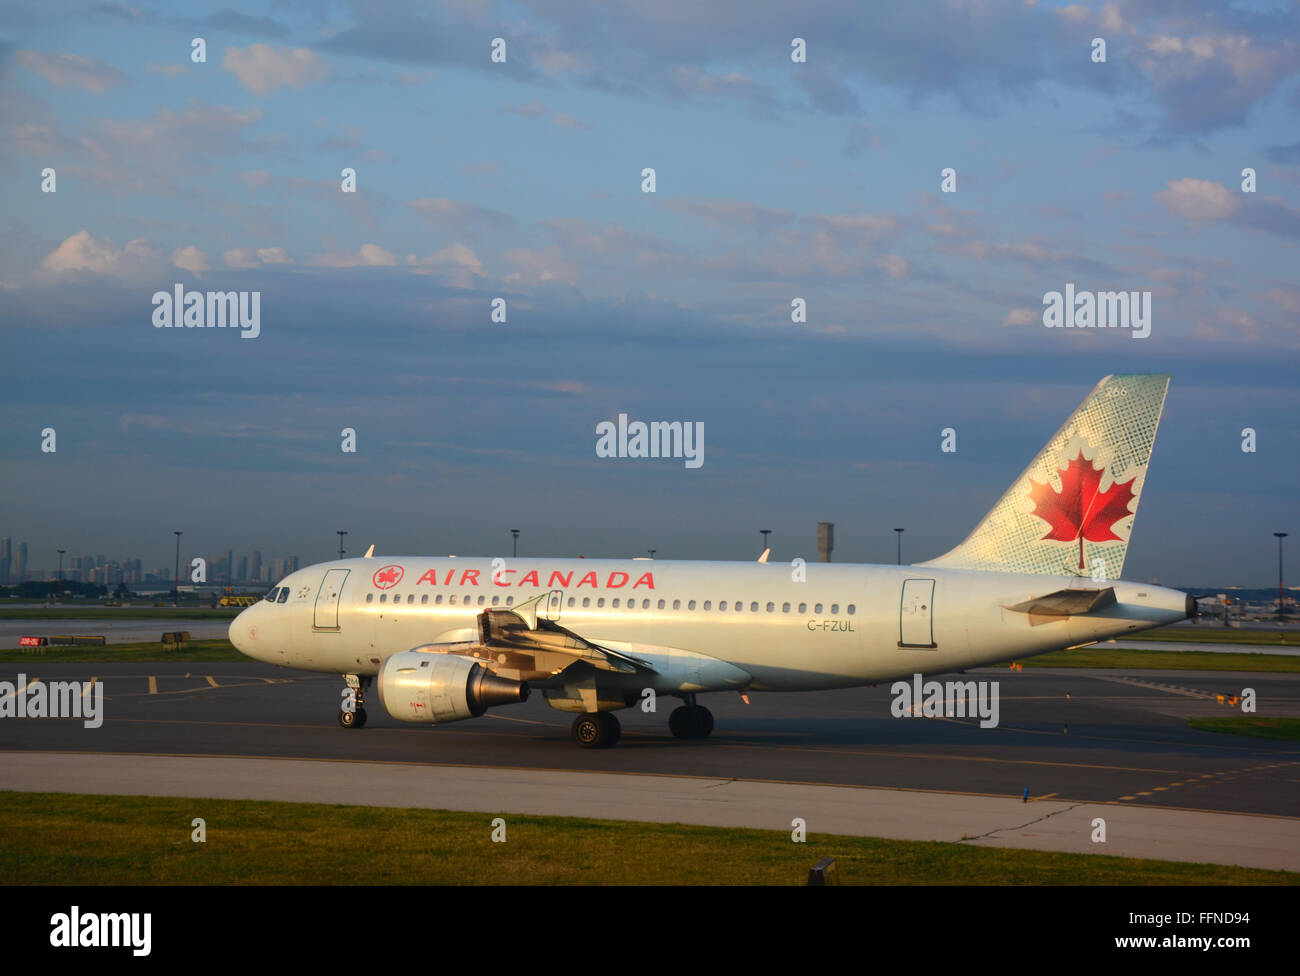 Air Canada airplane at Pearson airport, Toronto, Canada - Stock Image